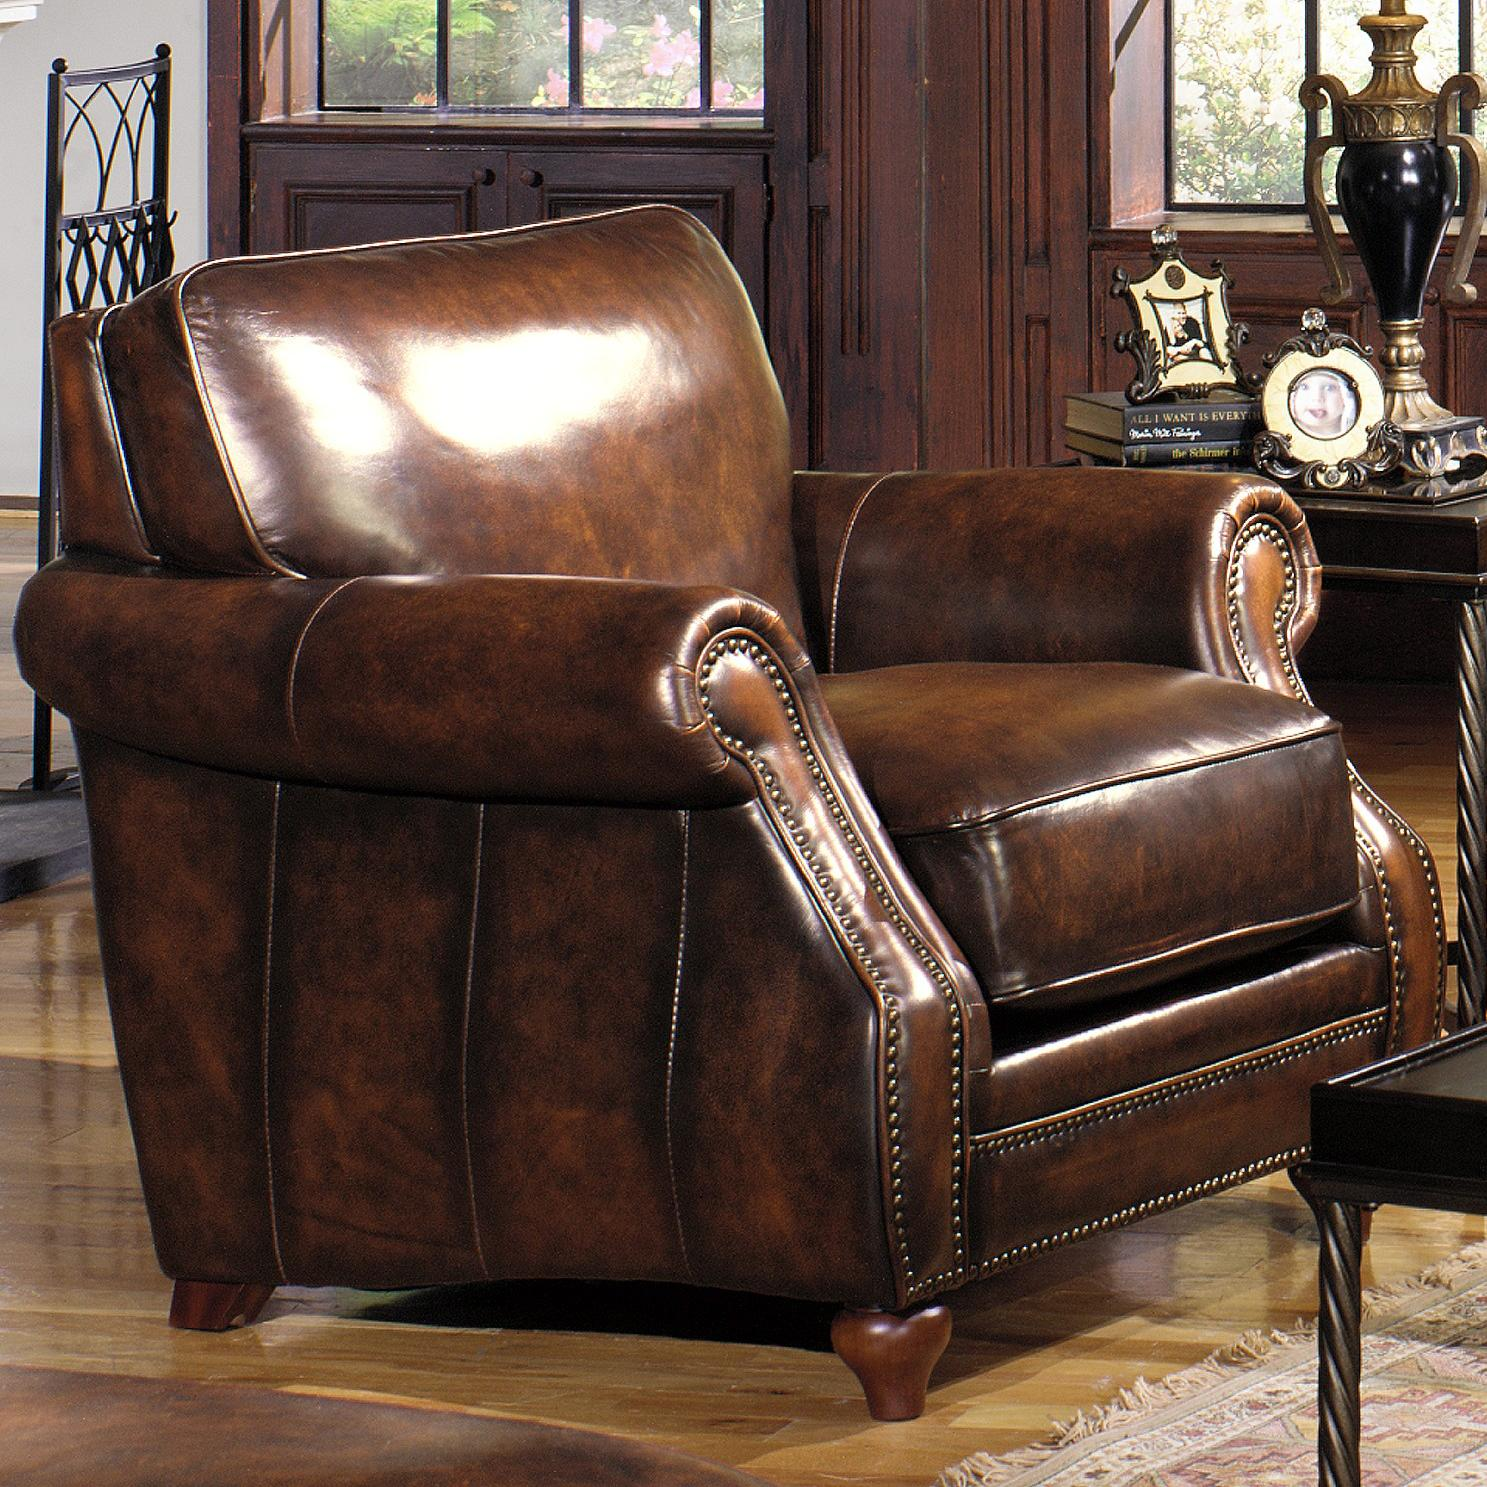 Charming Traditional Leather Stationary Chair With Rolled Arms And Nailhead Trim